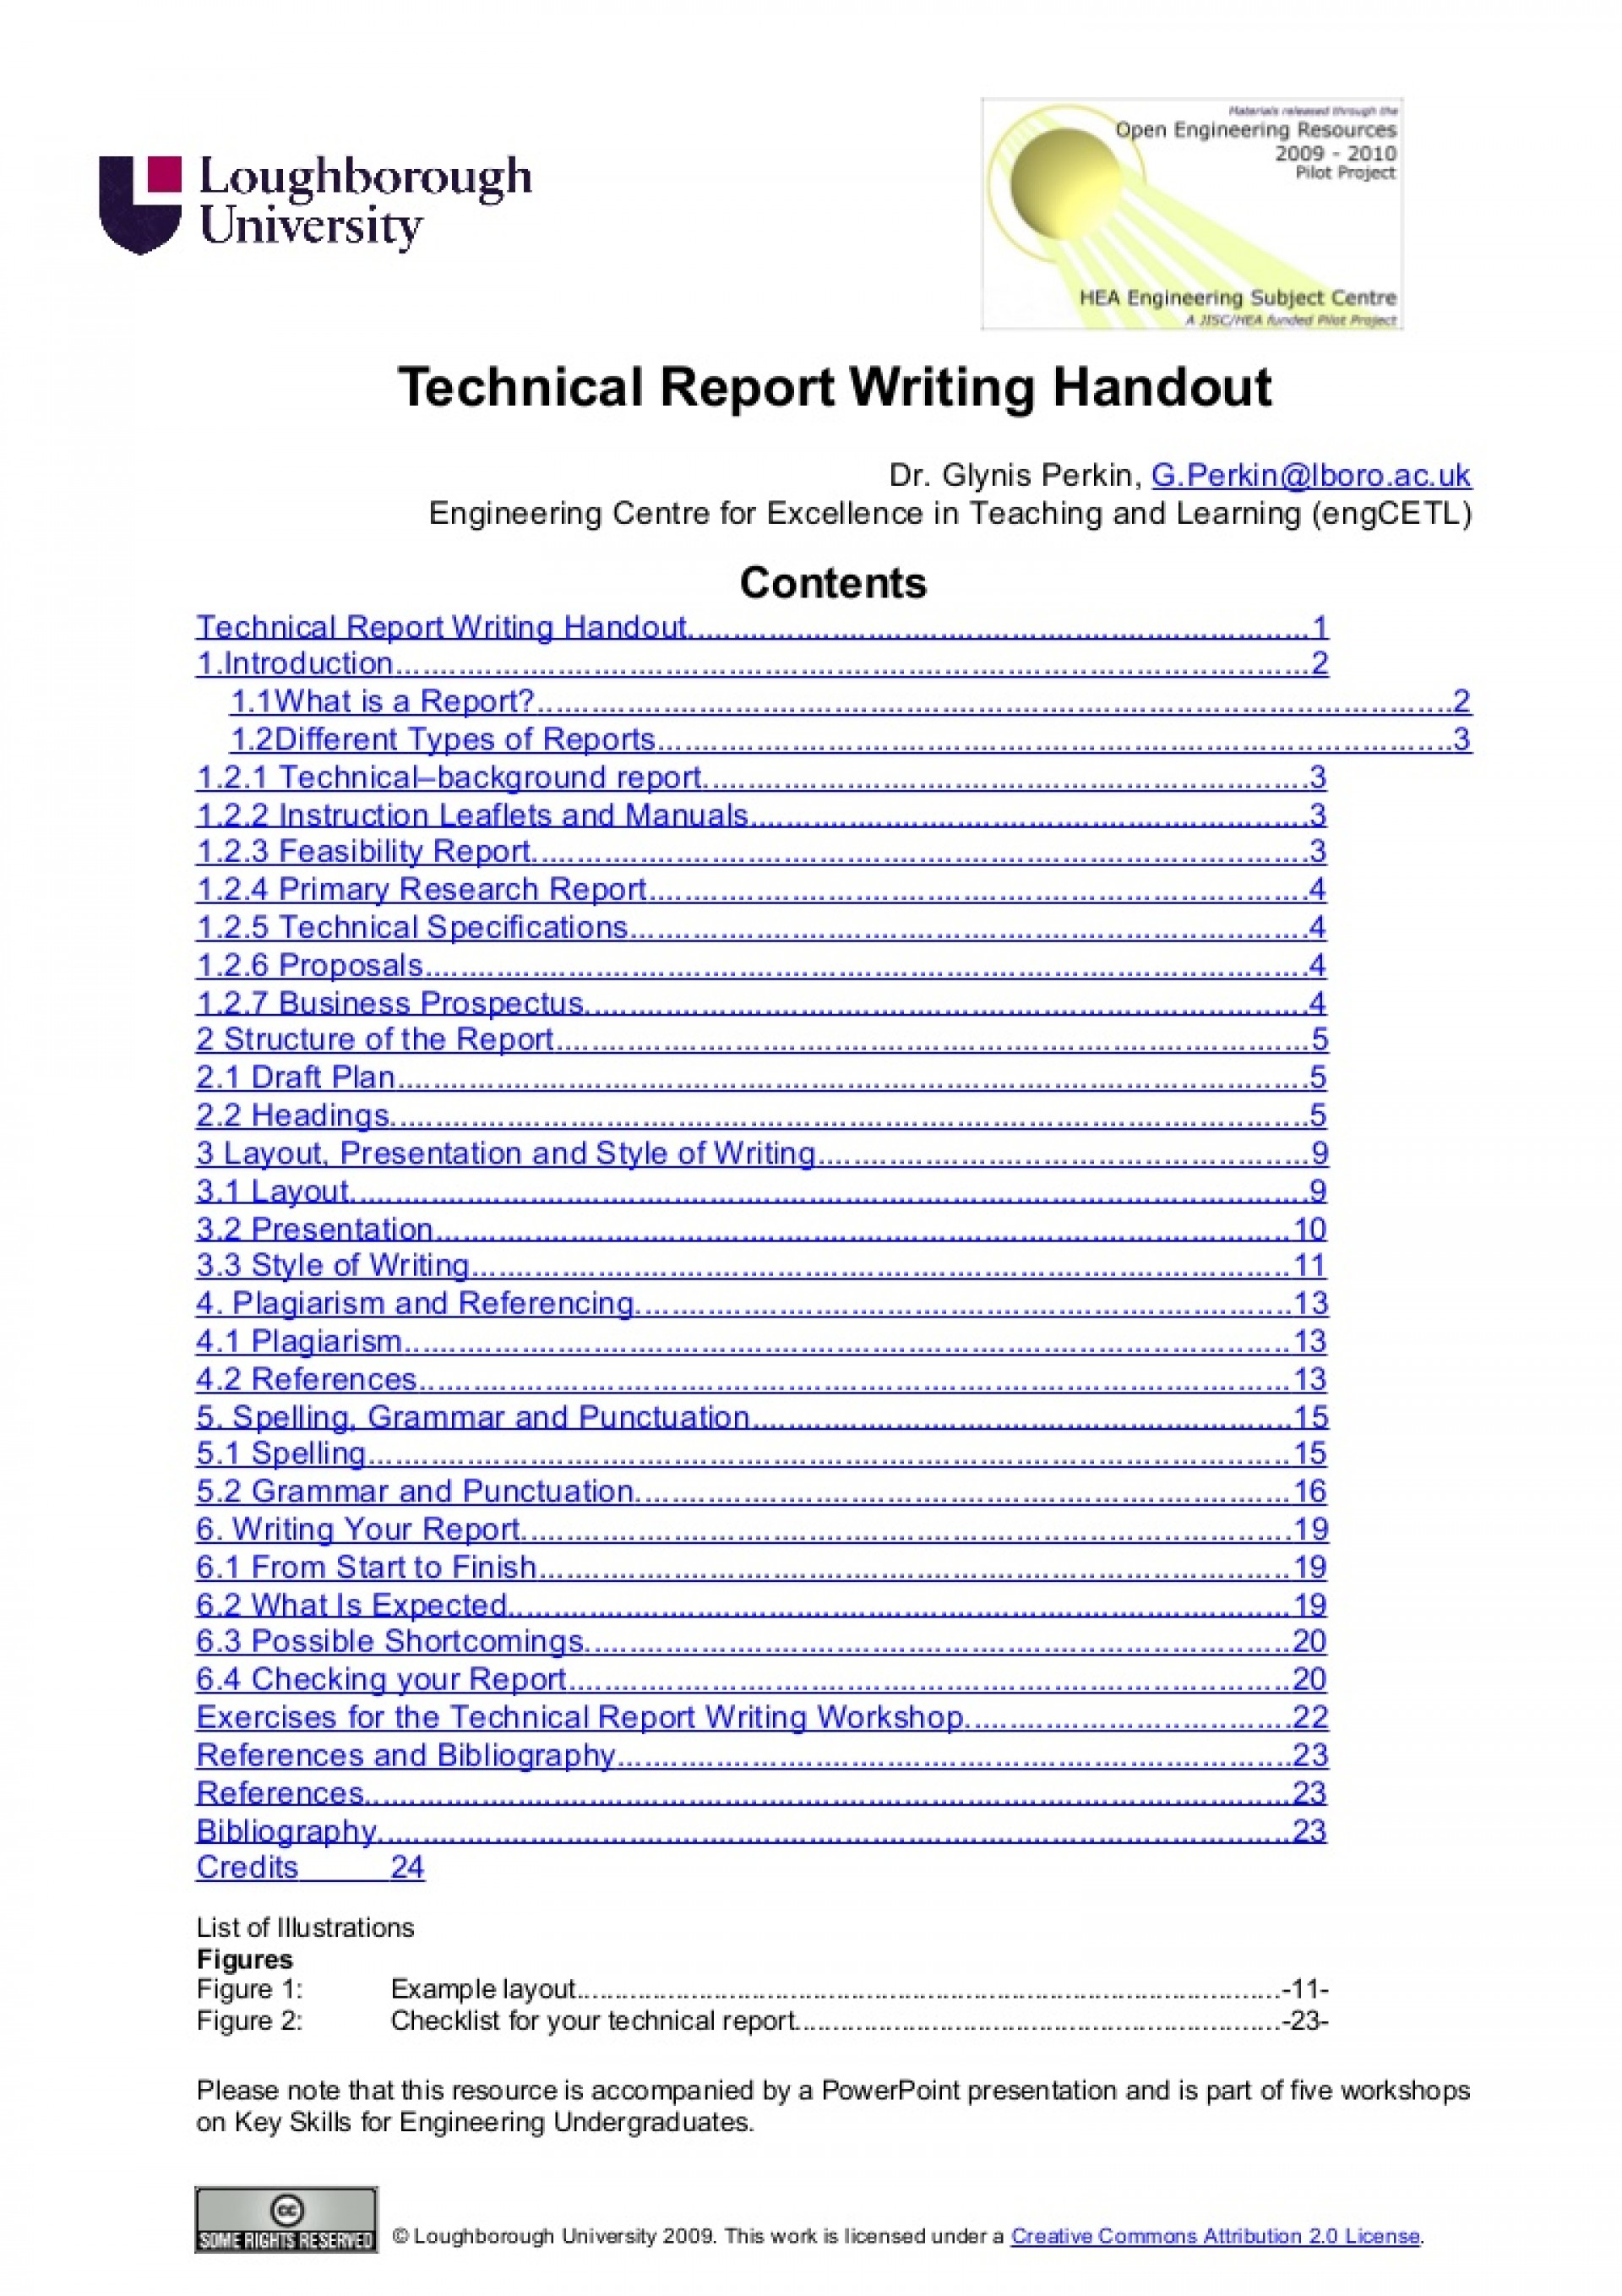 017 Technicalreportwritinghandout Oeredit Phpapp02 Thumbnail How To Write References In Research Paper Excellent Slideshare 1920